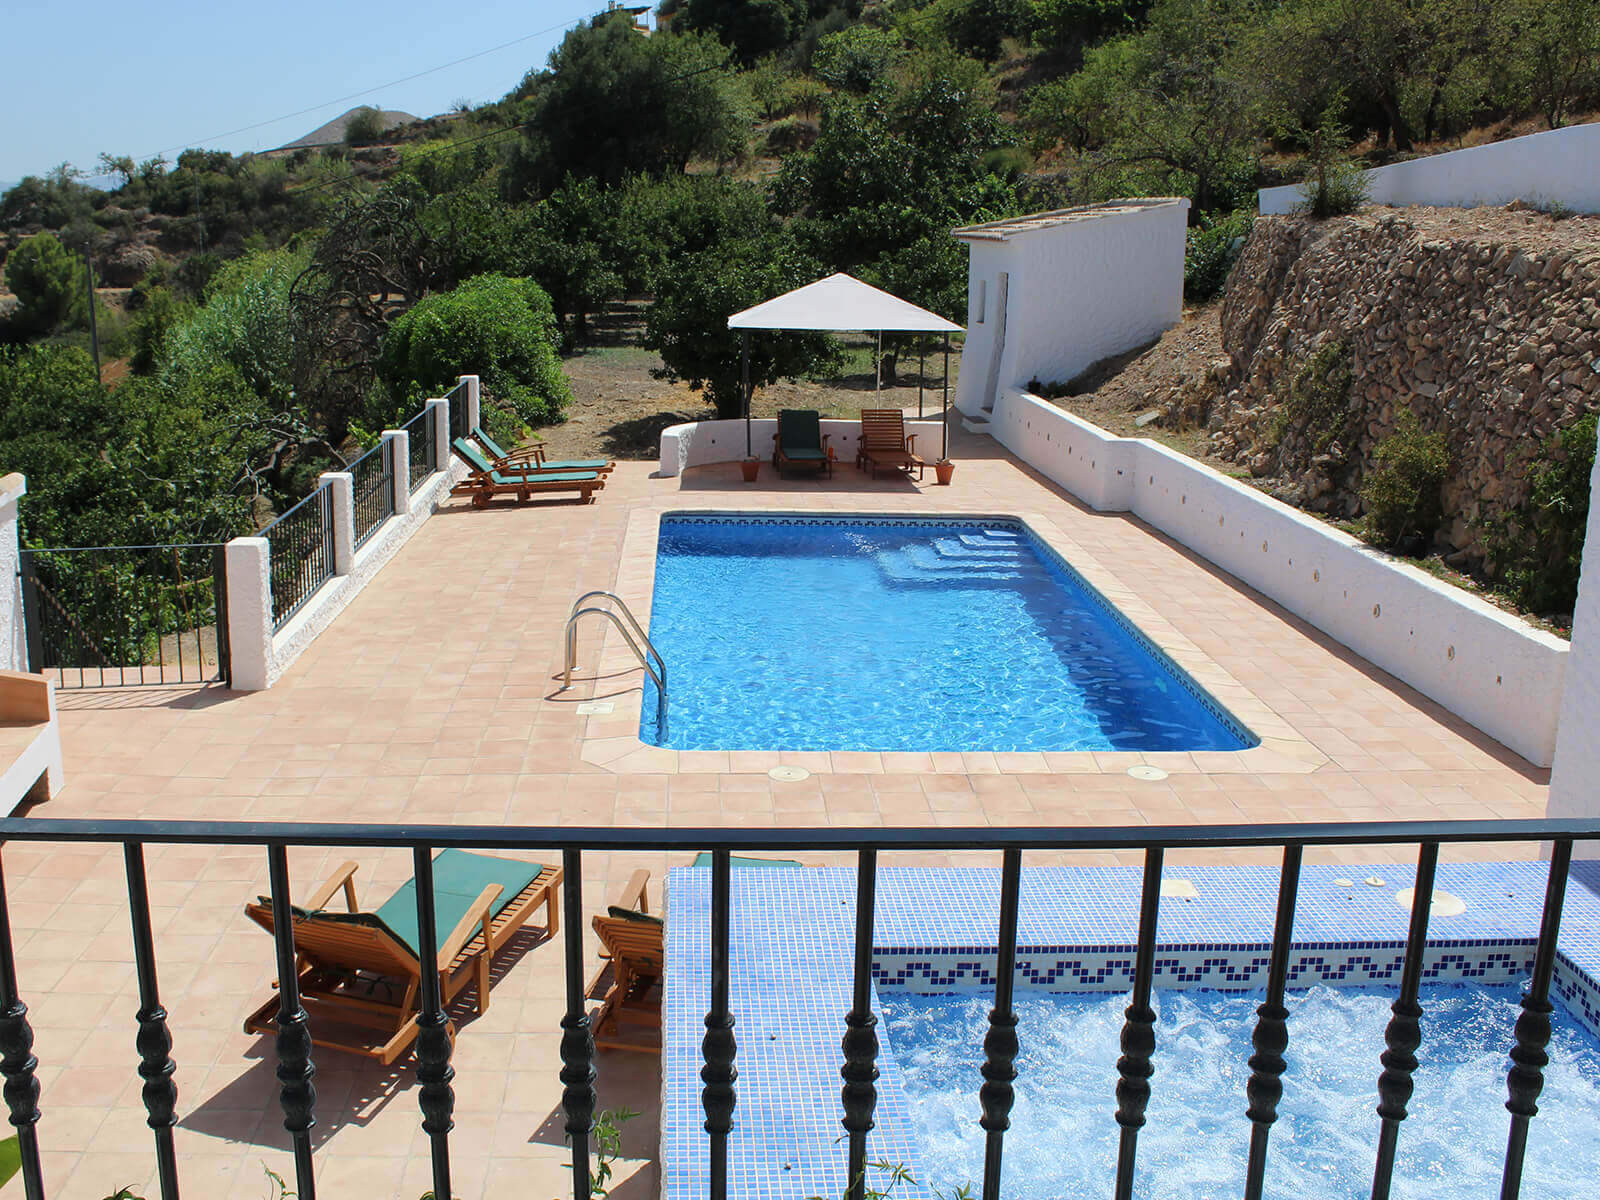 8m x 4m gated, private pool with sun loungers and spectacular views.